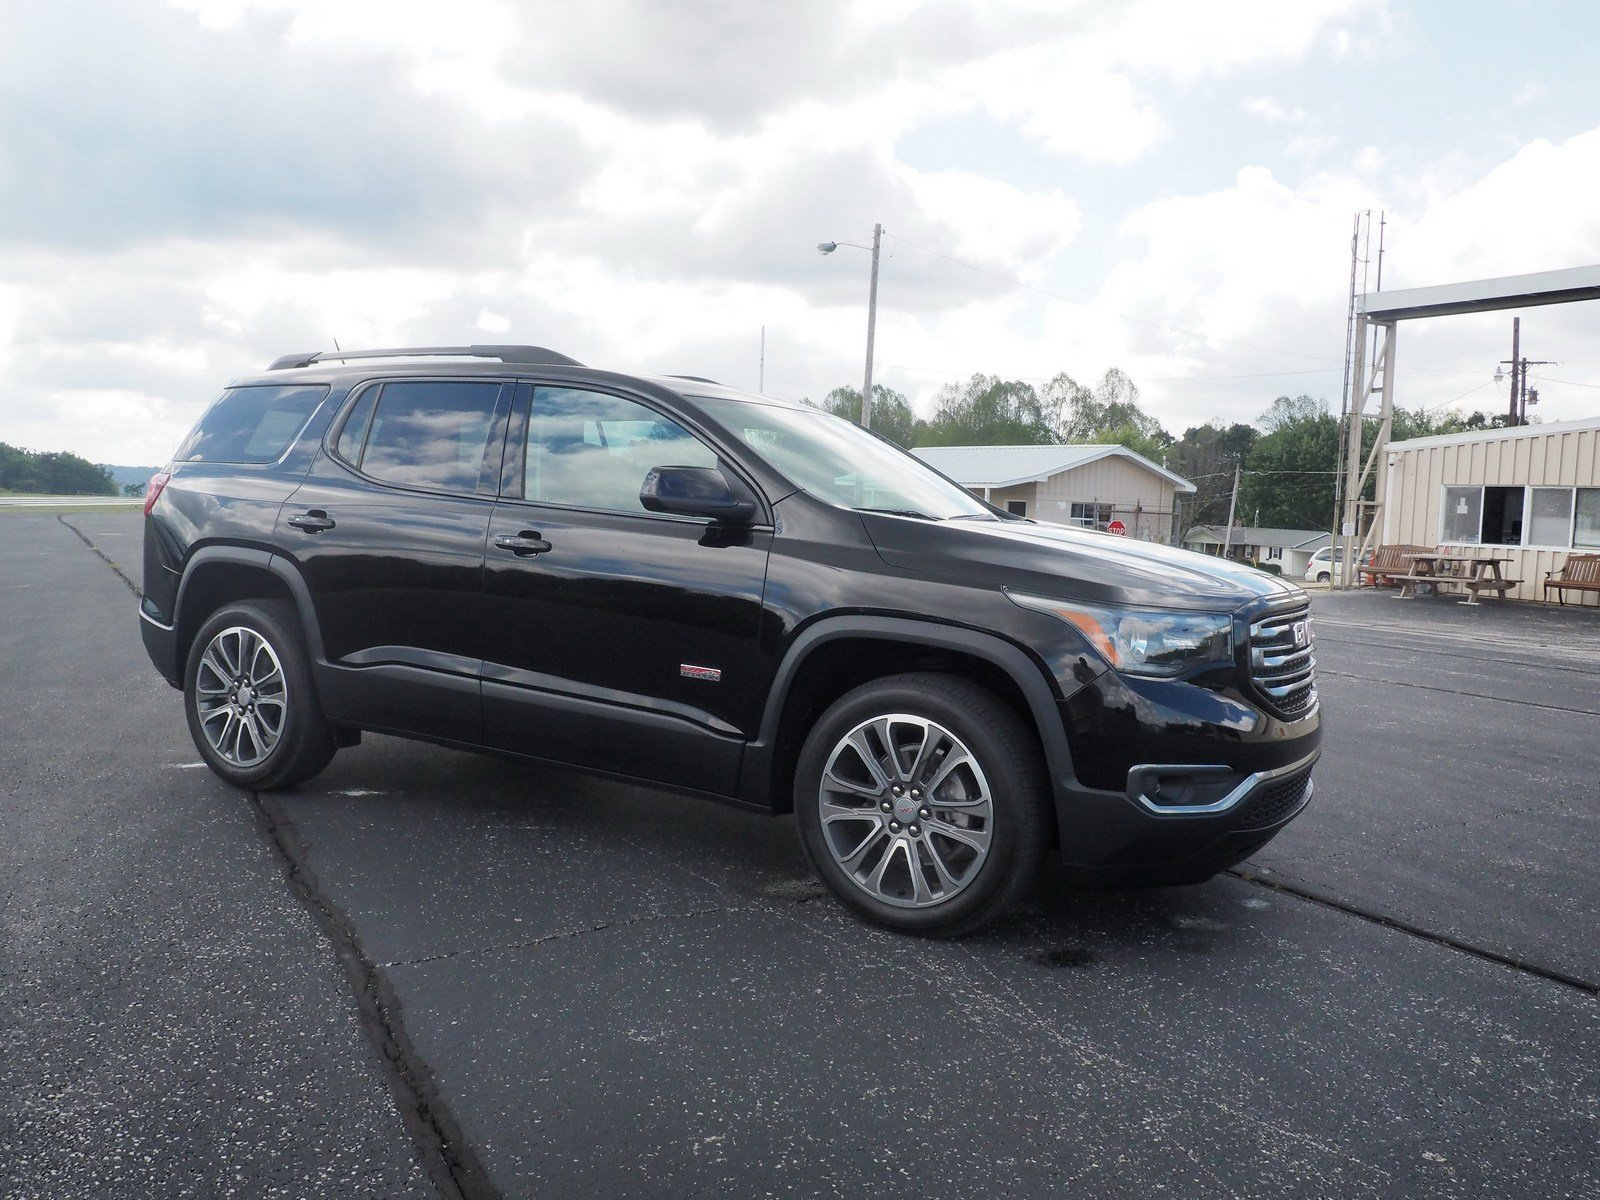 2017 gmc acadia all terrain driven picture 701958 car review top speed. Black Bedroom Furniture Sets. Home Design Ideas